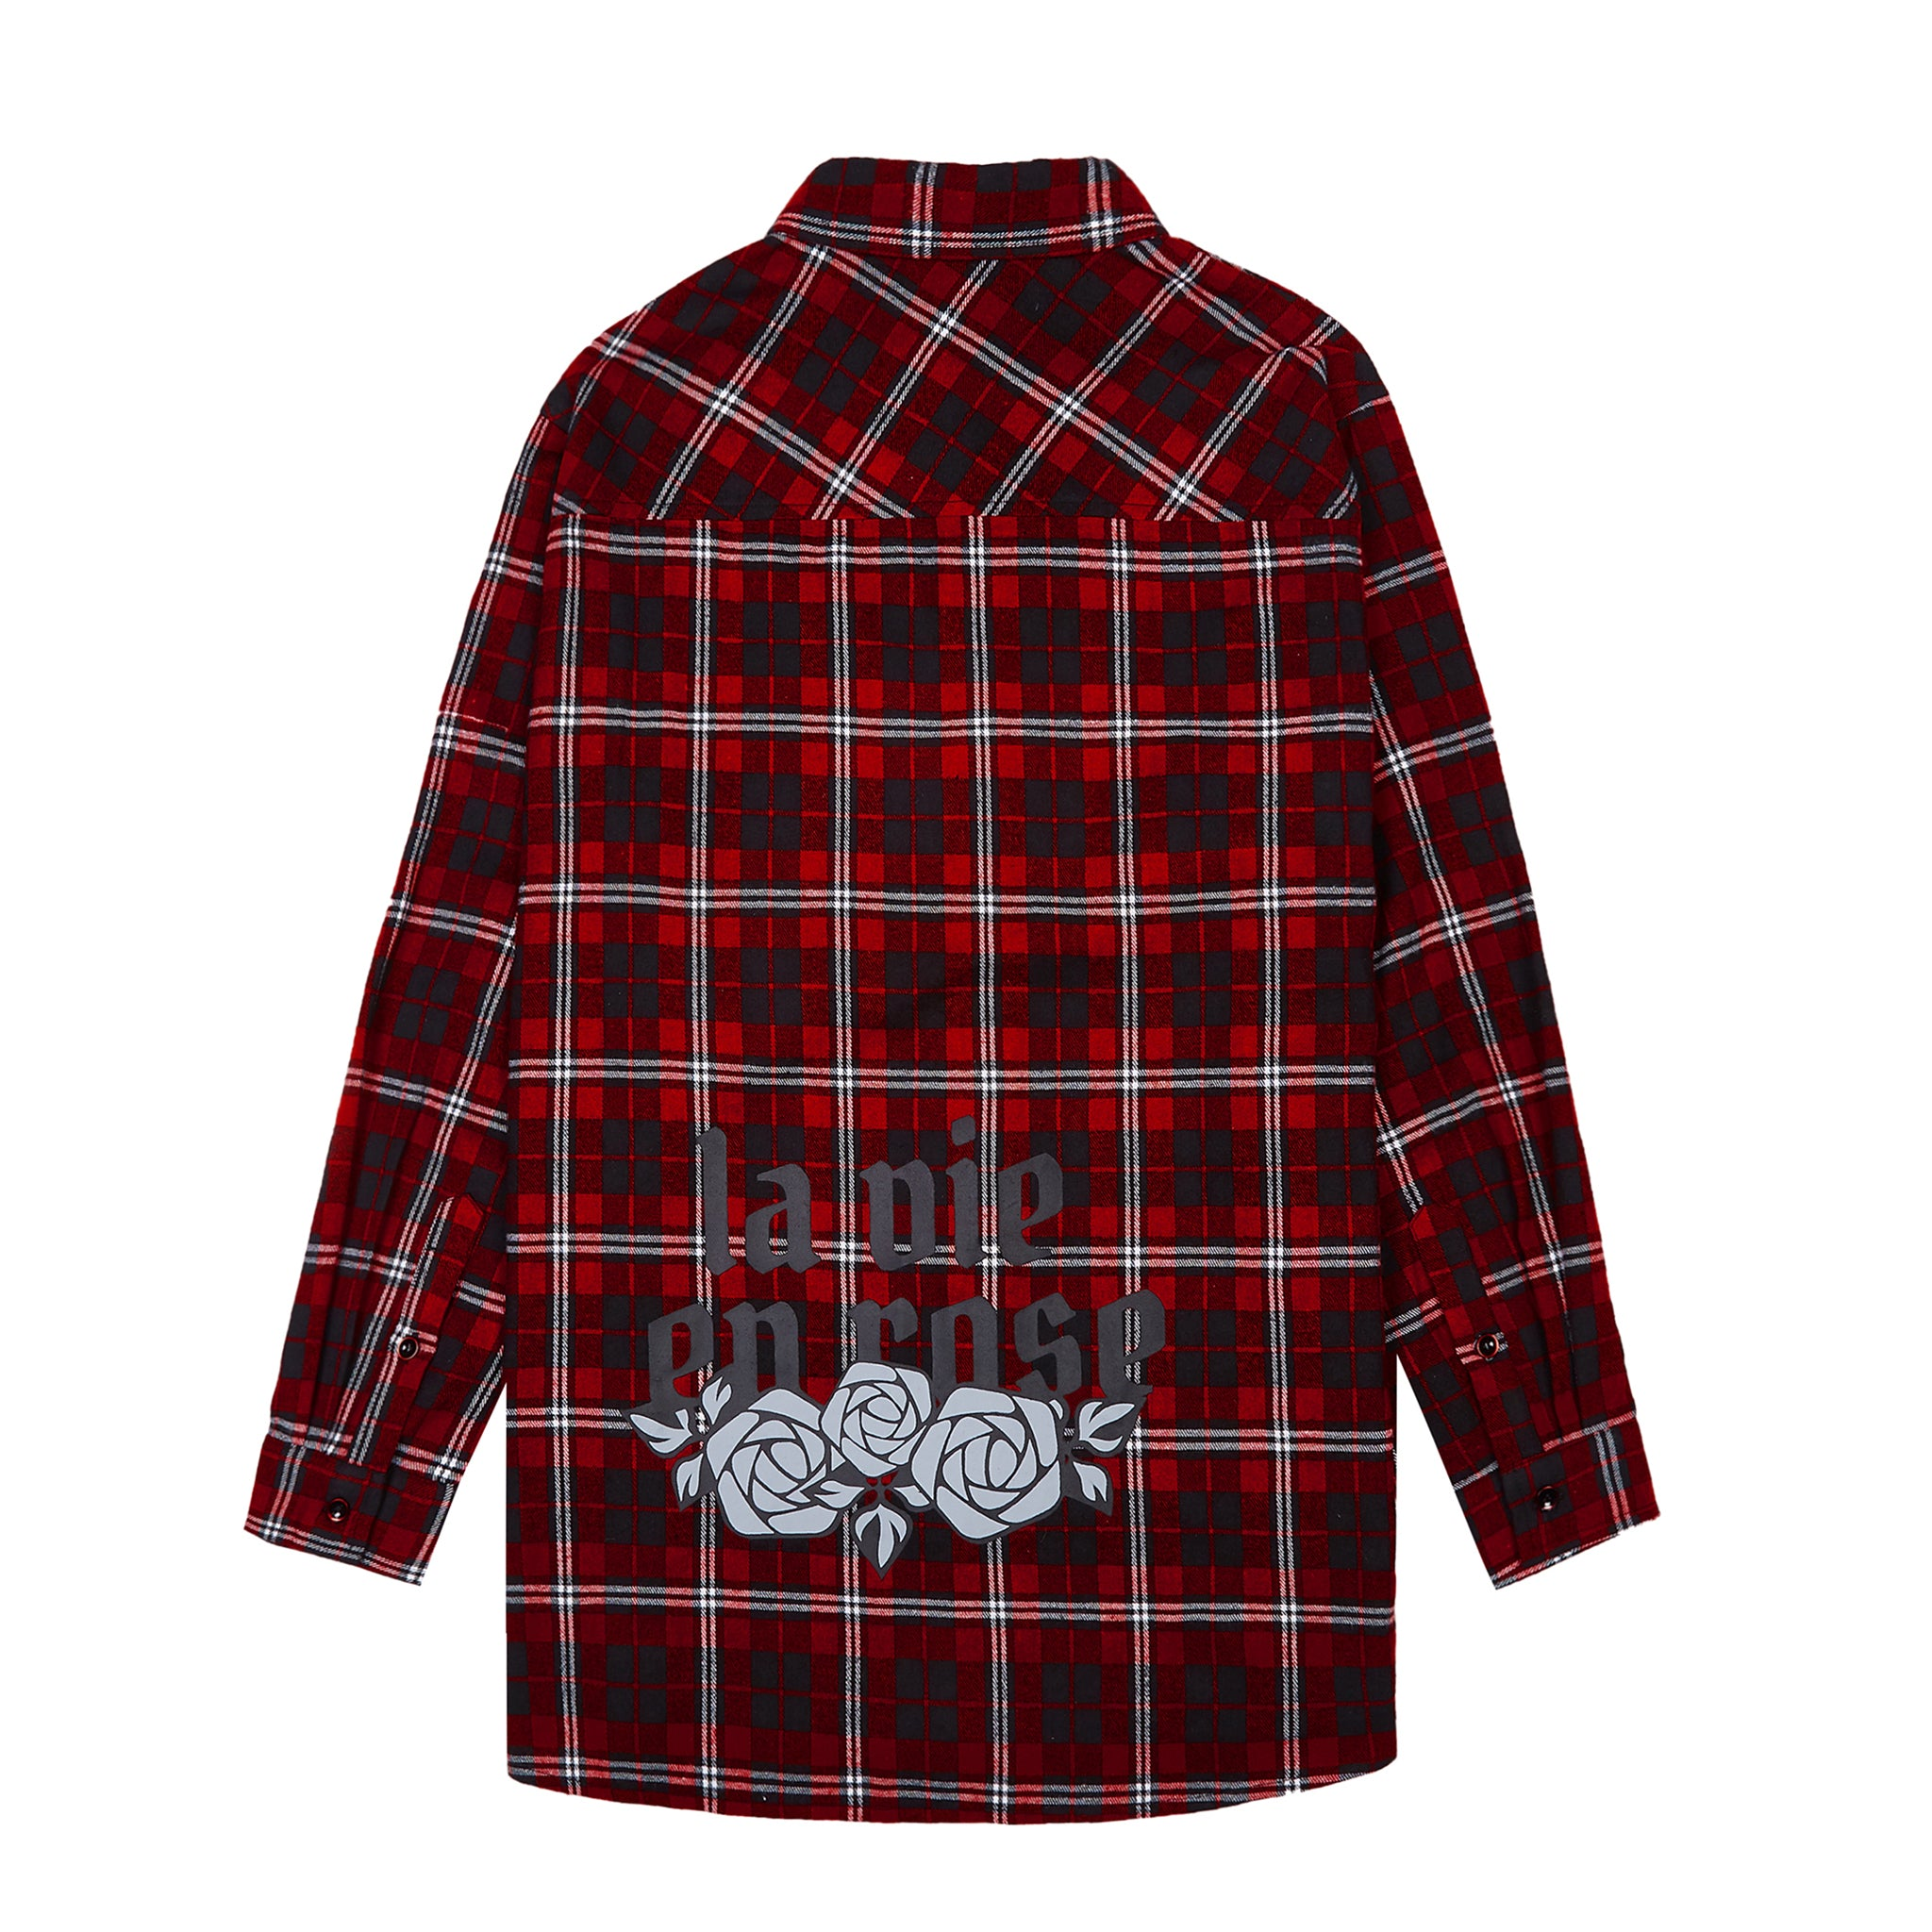 Load image into Gallery viewer, La Vie en Rose Check Shirt - Red